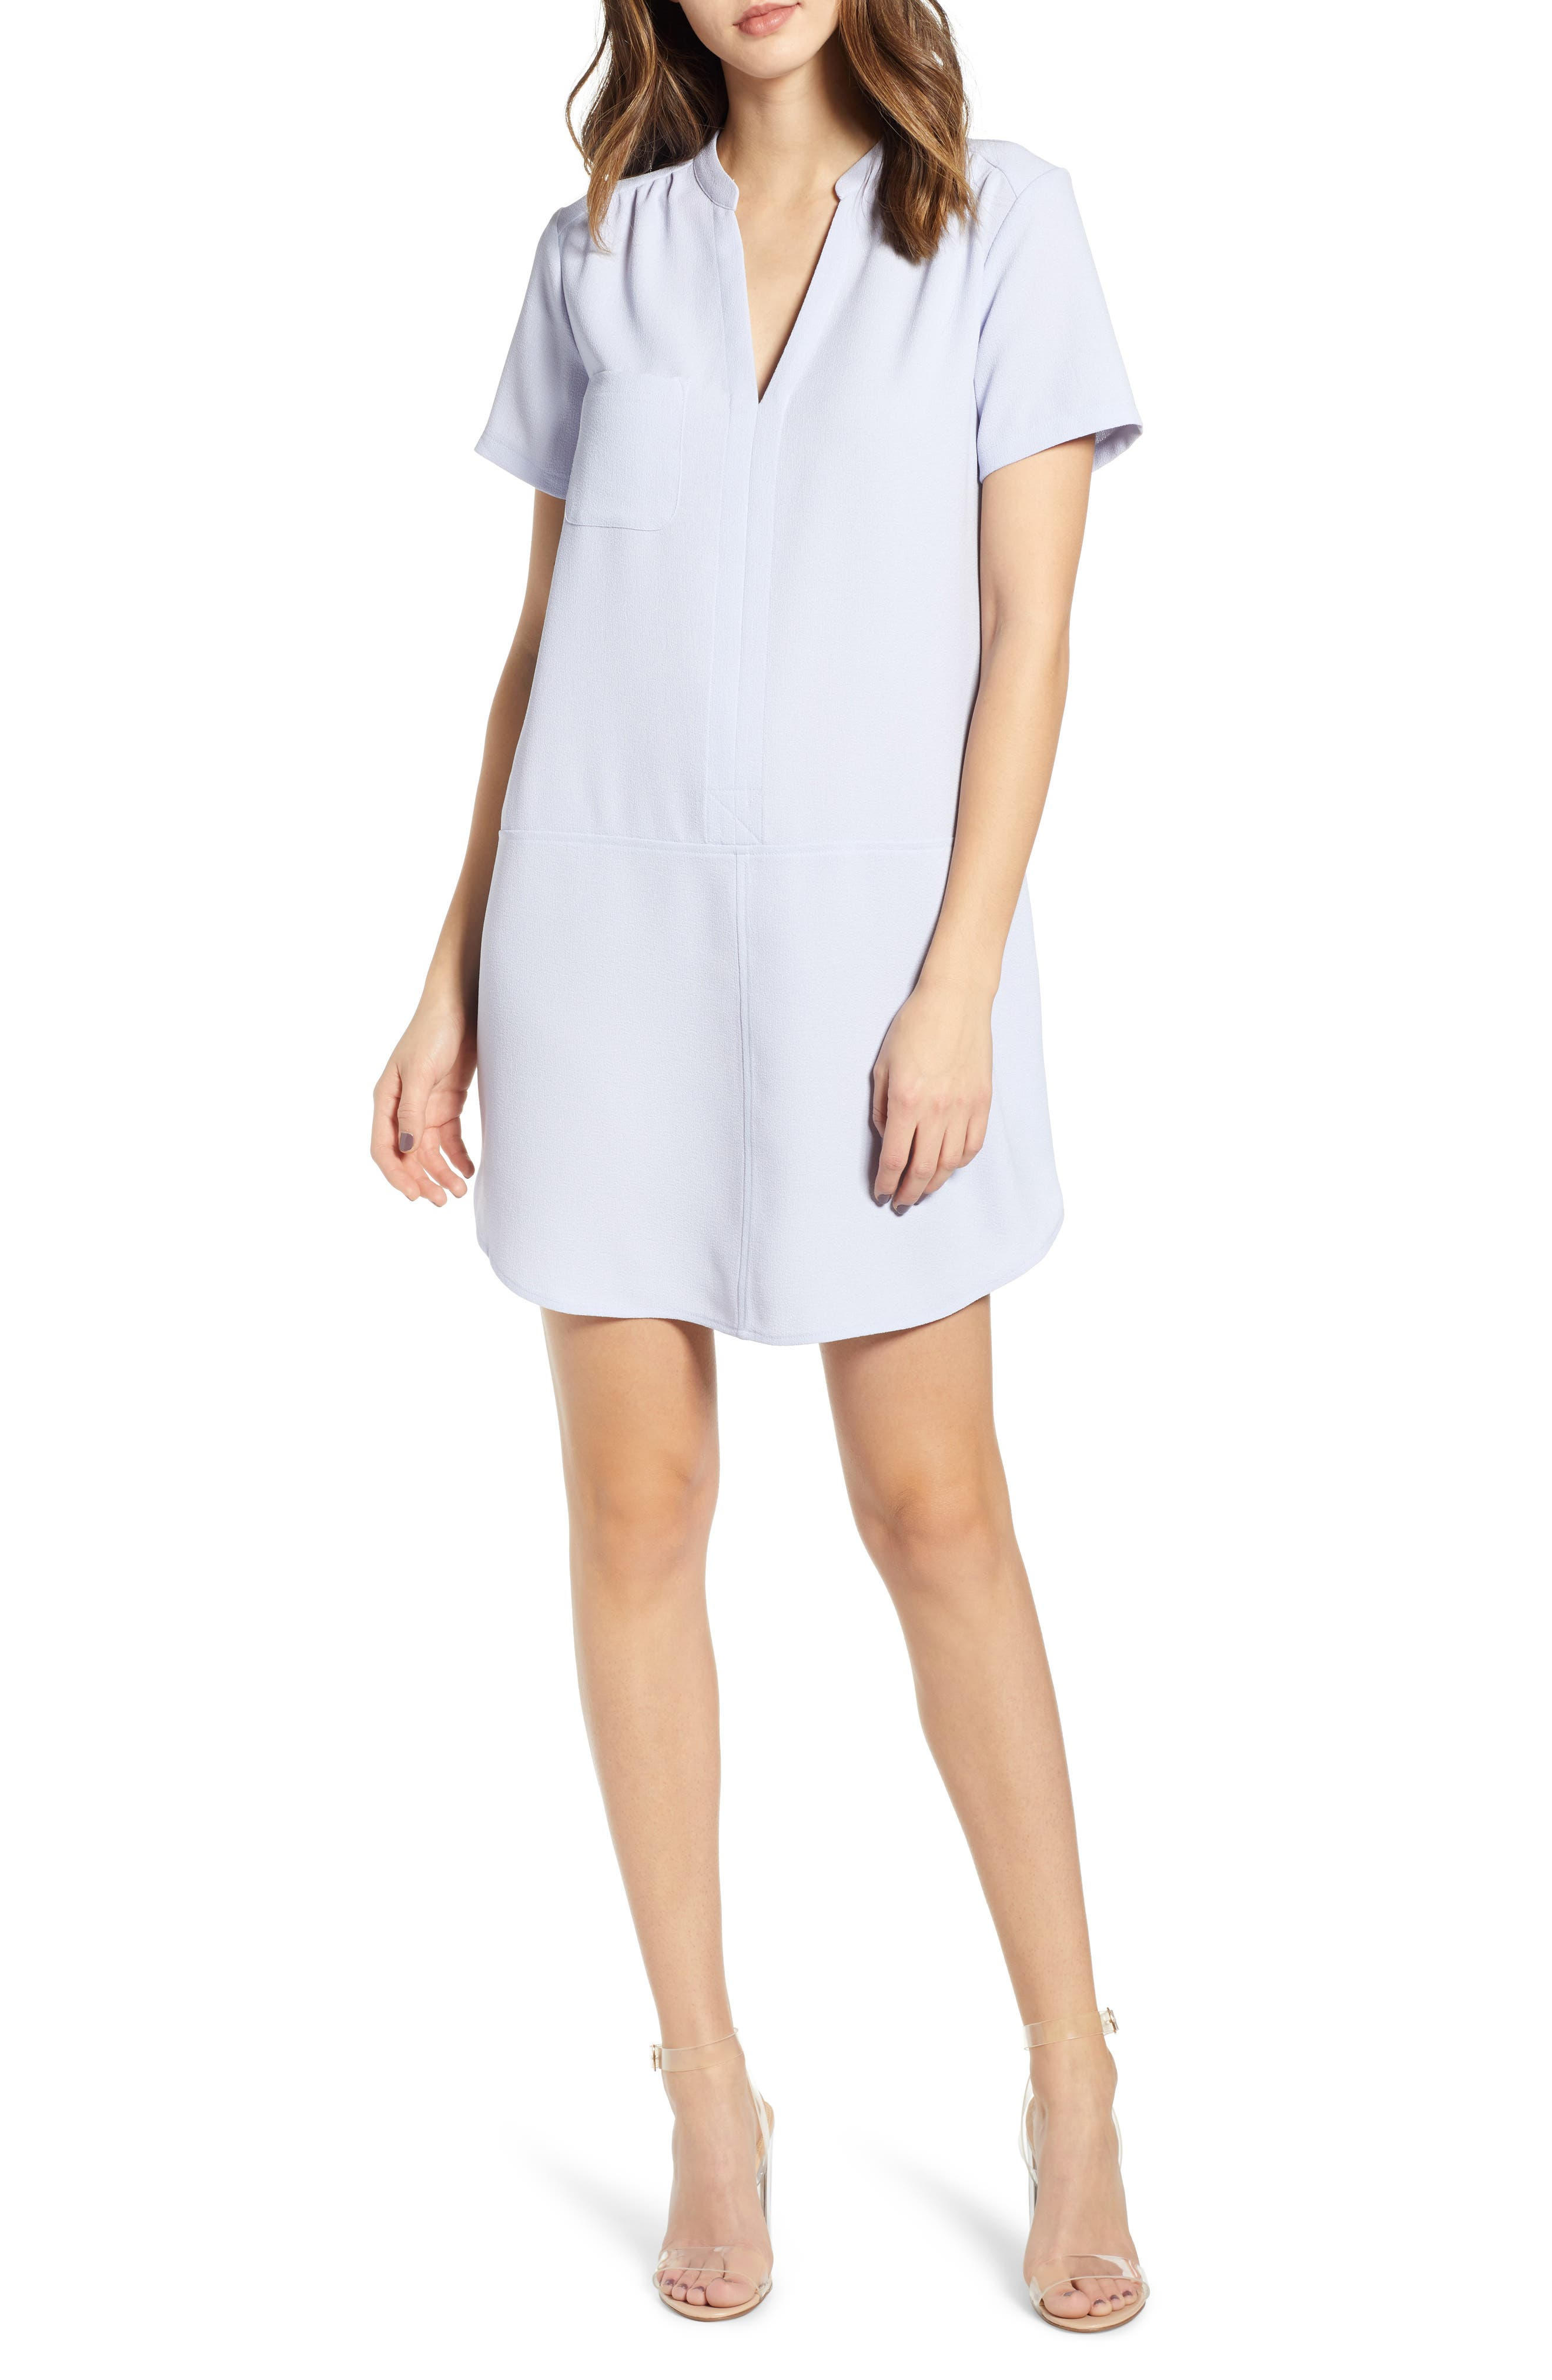 ALL IN FAVOR Hailey Crepe Dress, Main, color, HEATHER BLUE